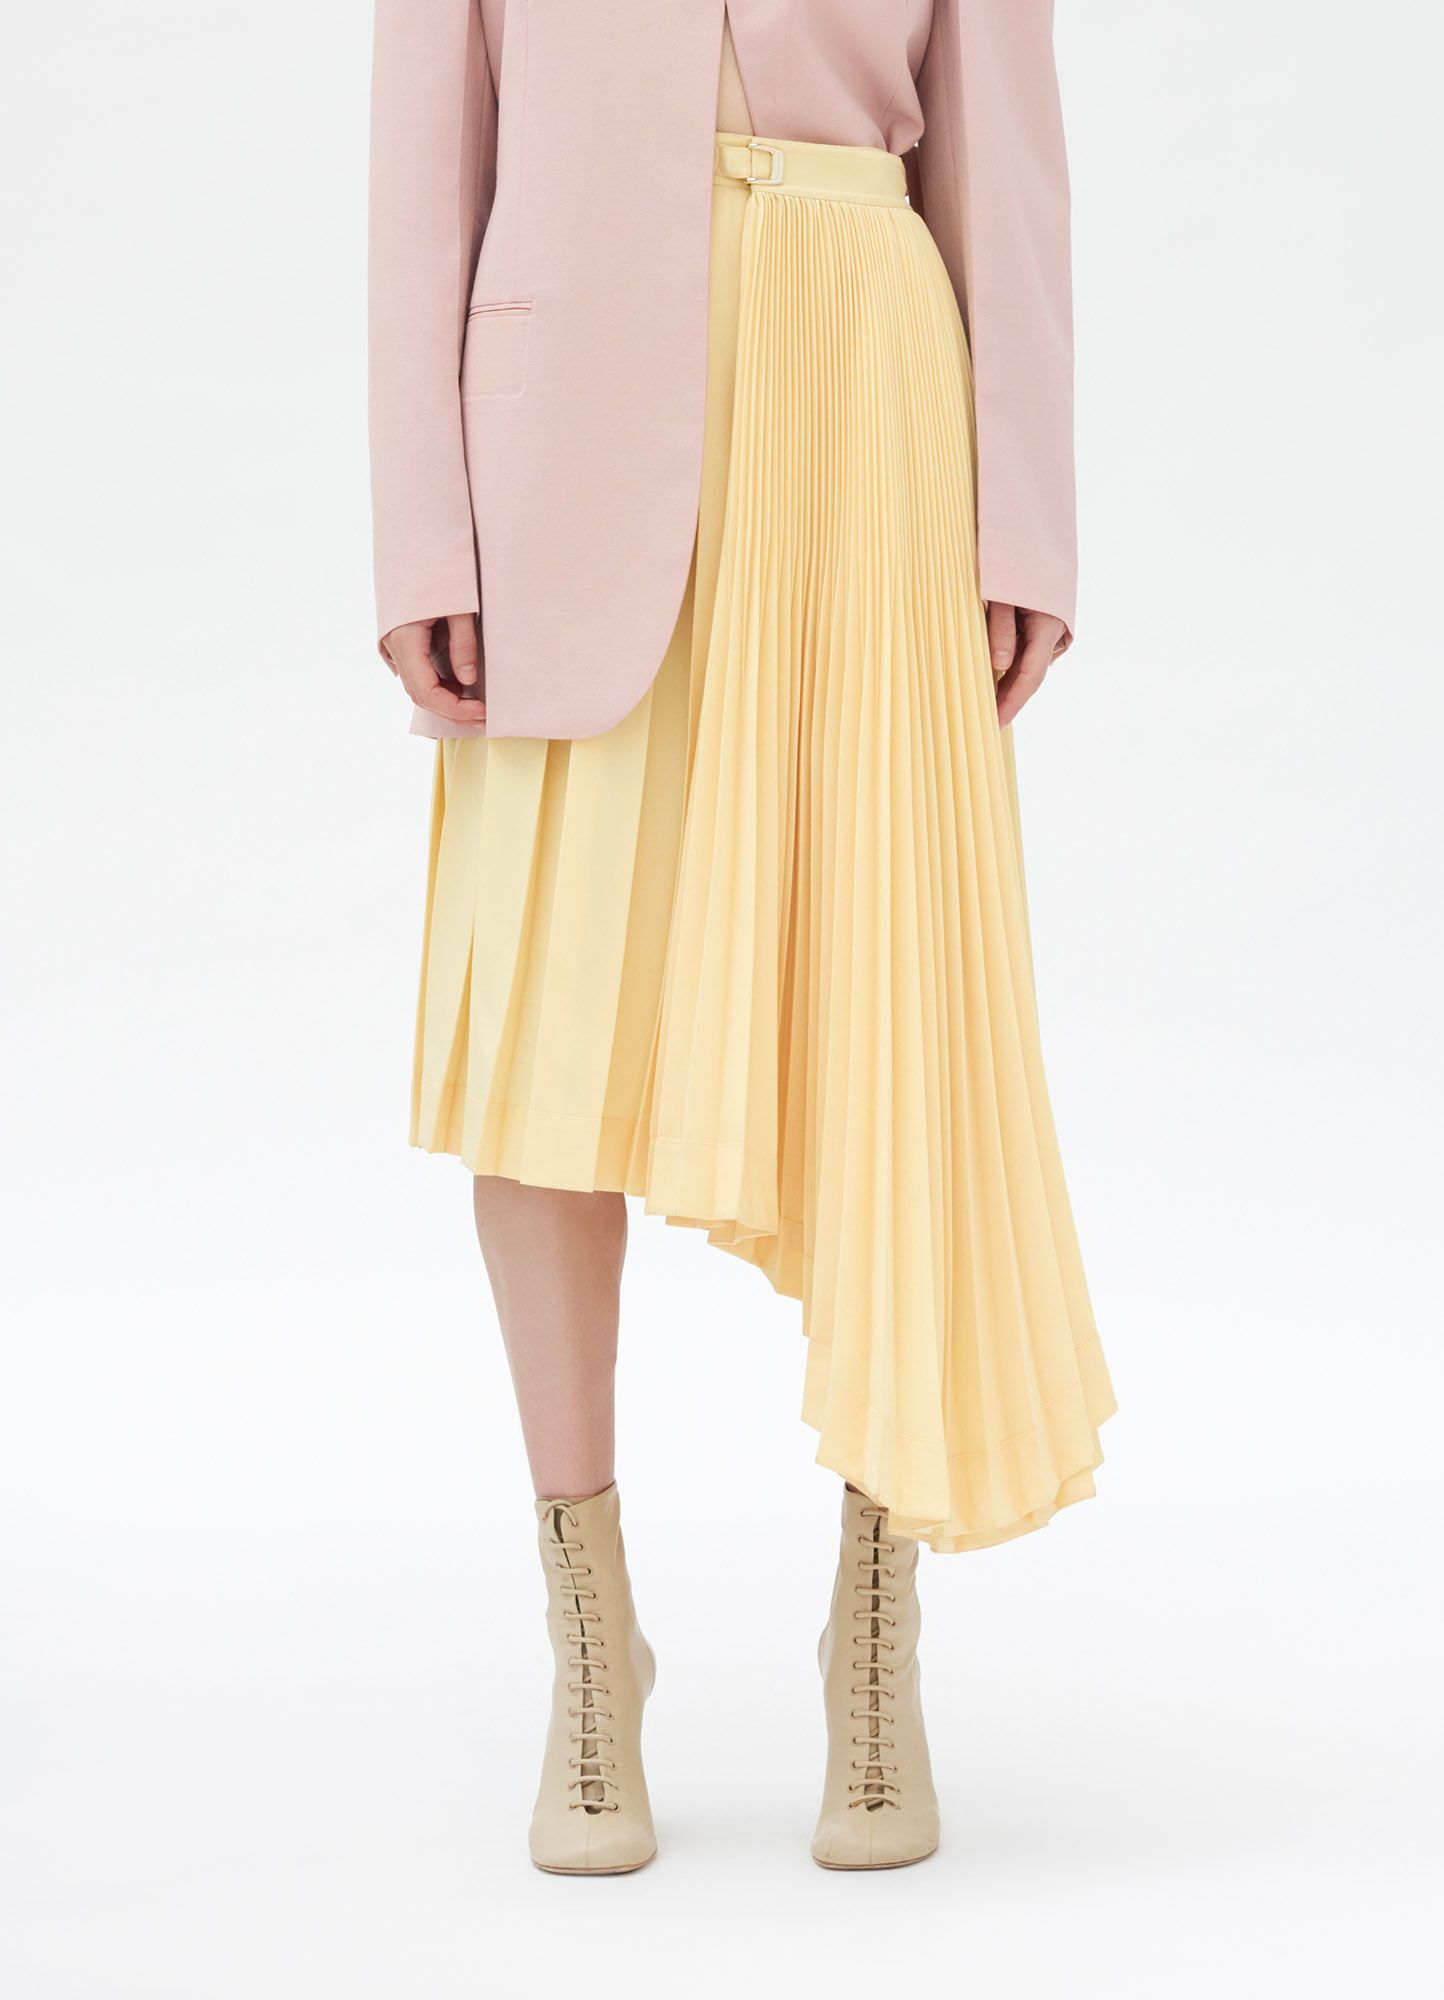 Asymmetrical pleated skirt in polyester fabric